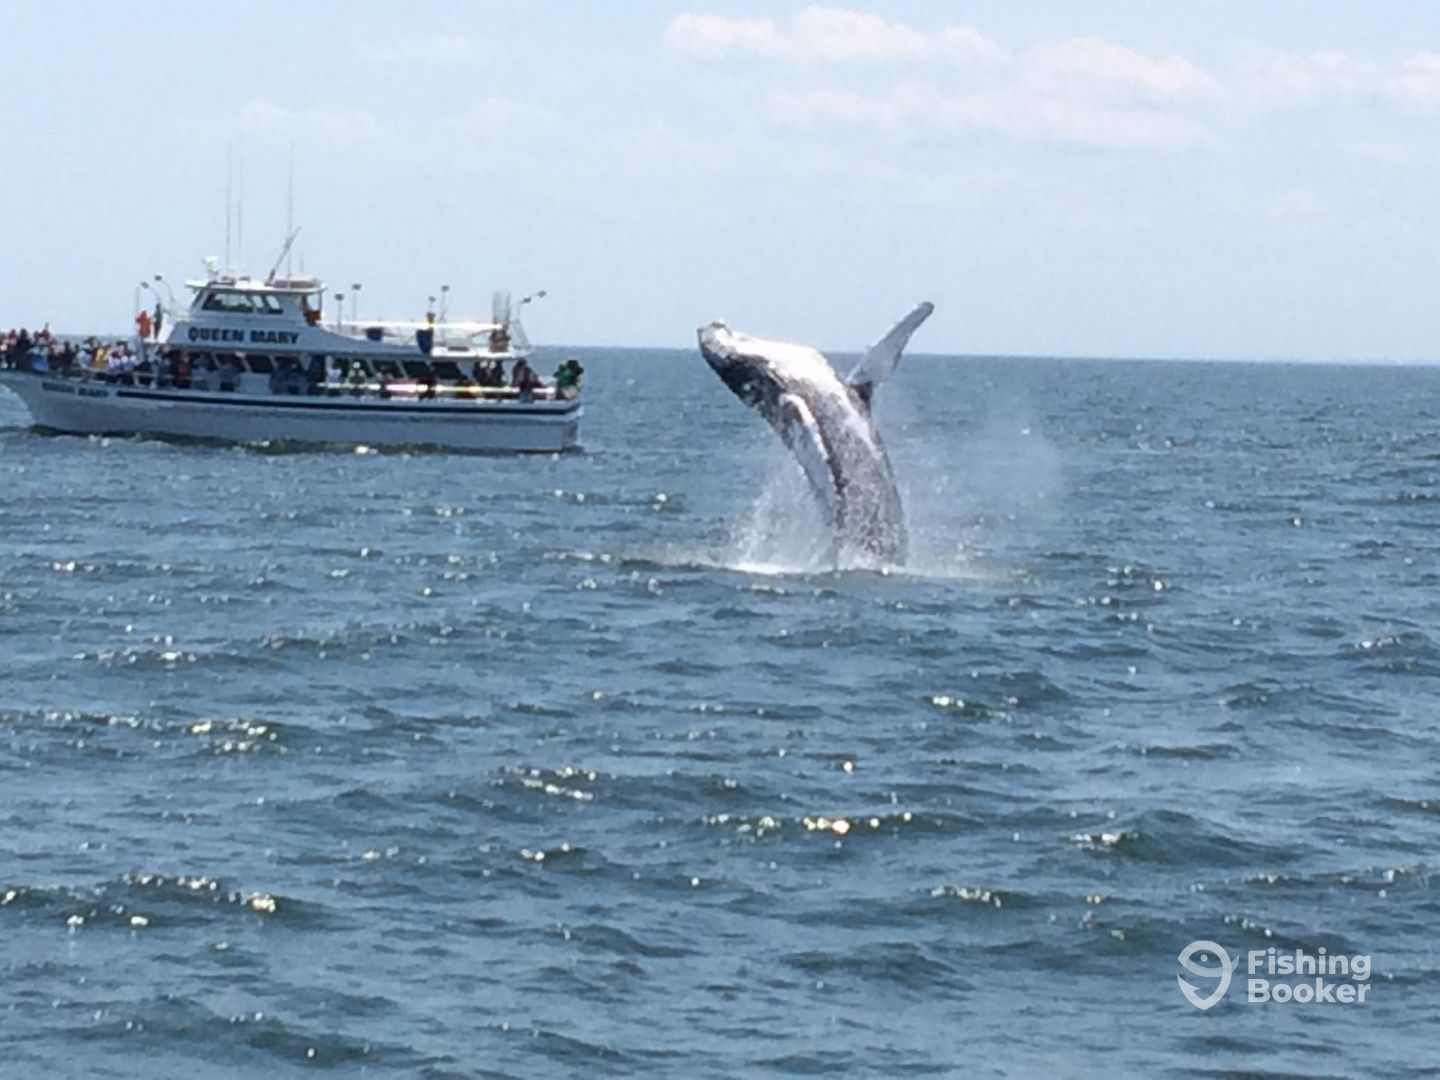 Queen mary open boat charters point pleasant beach nj for Point pleasant fishing